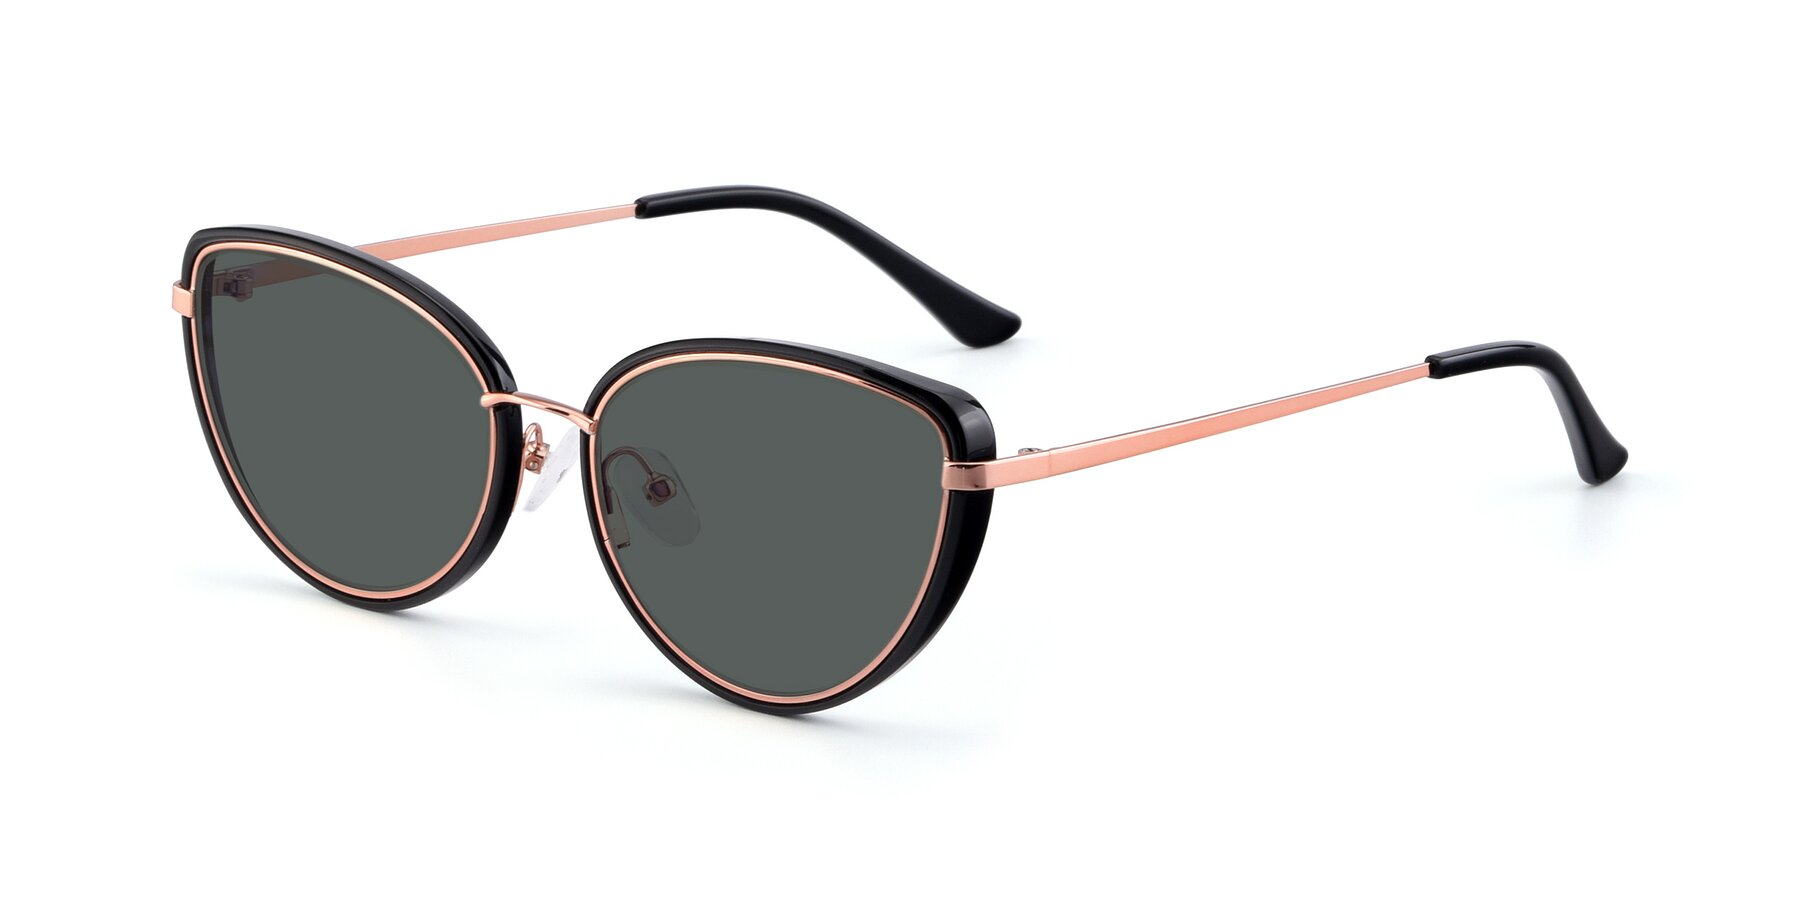 Angle of 17706 in Black-Rose Gold with Gray Polarized Lenses